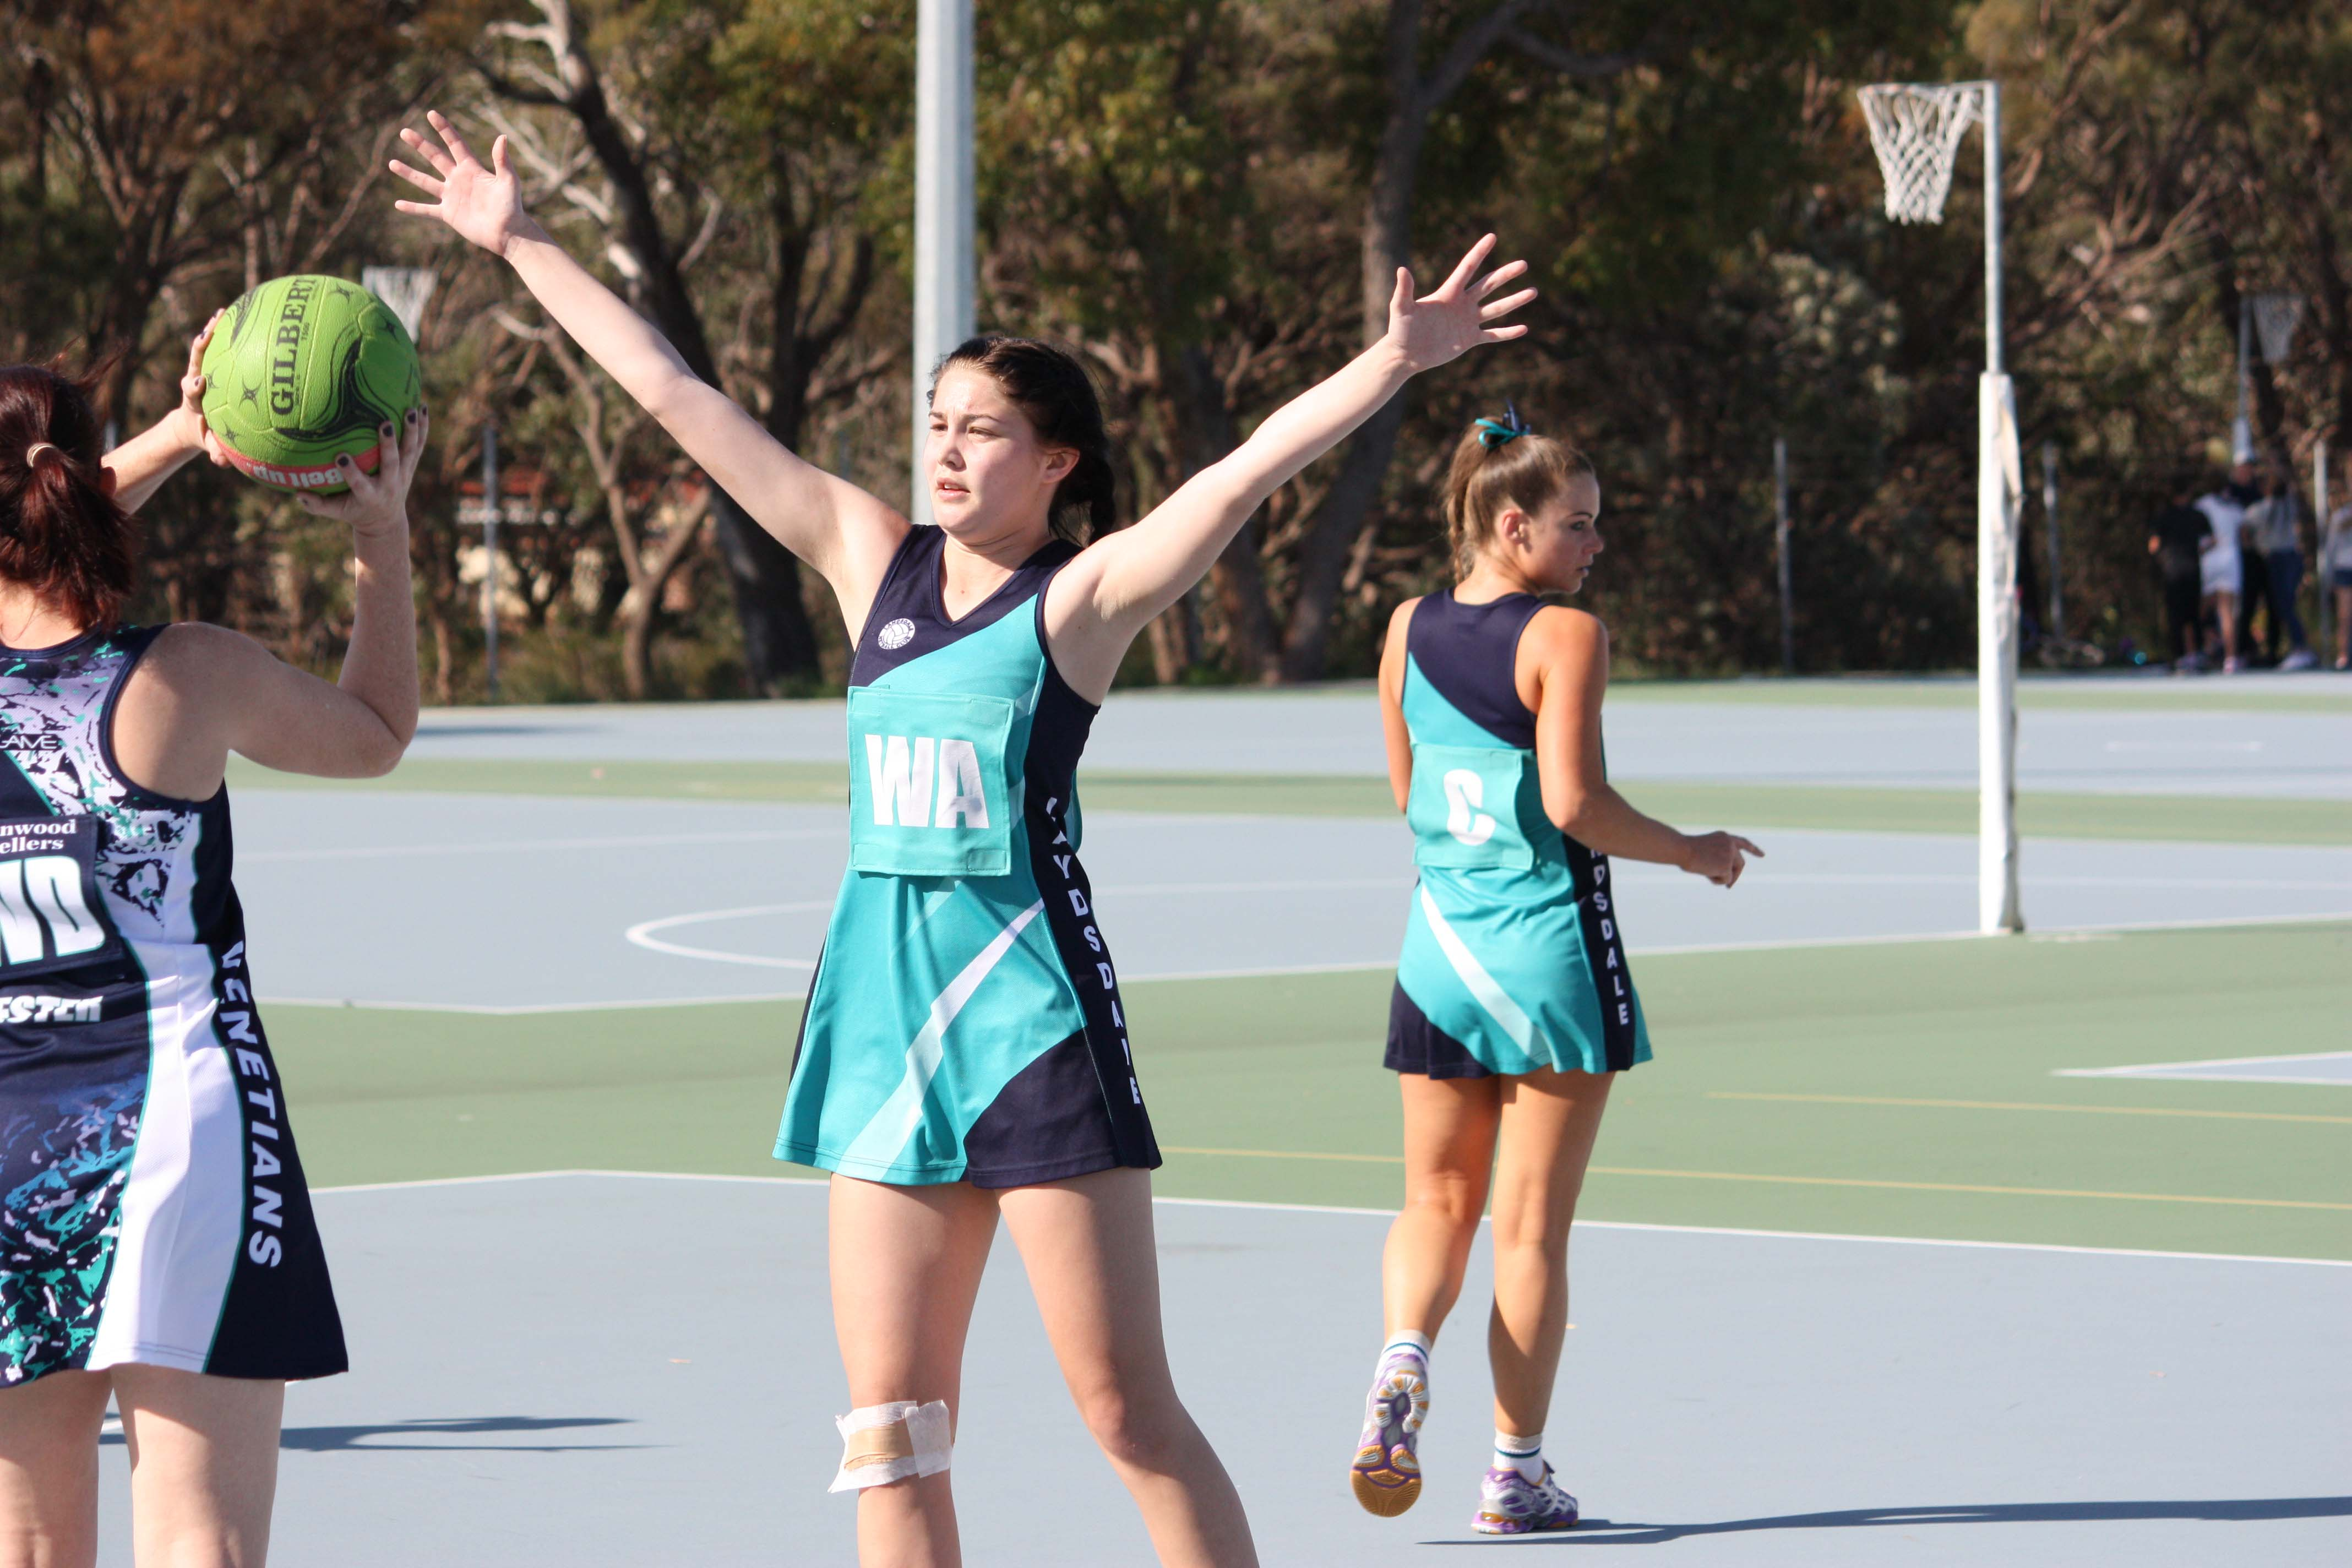 Landsdale Netball Club Open Players10